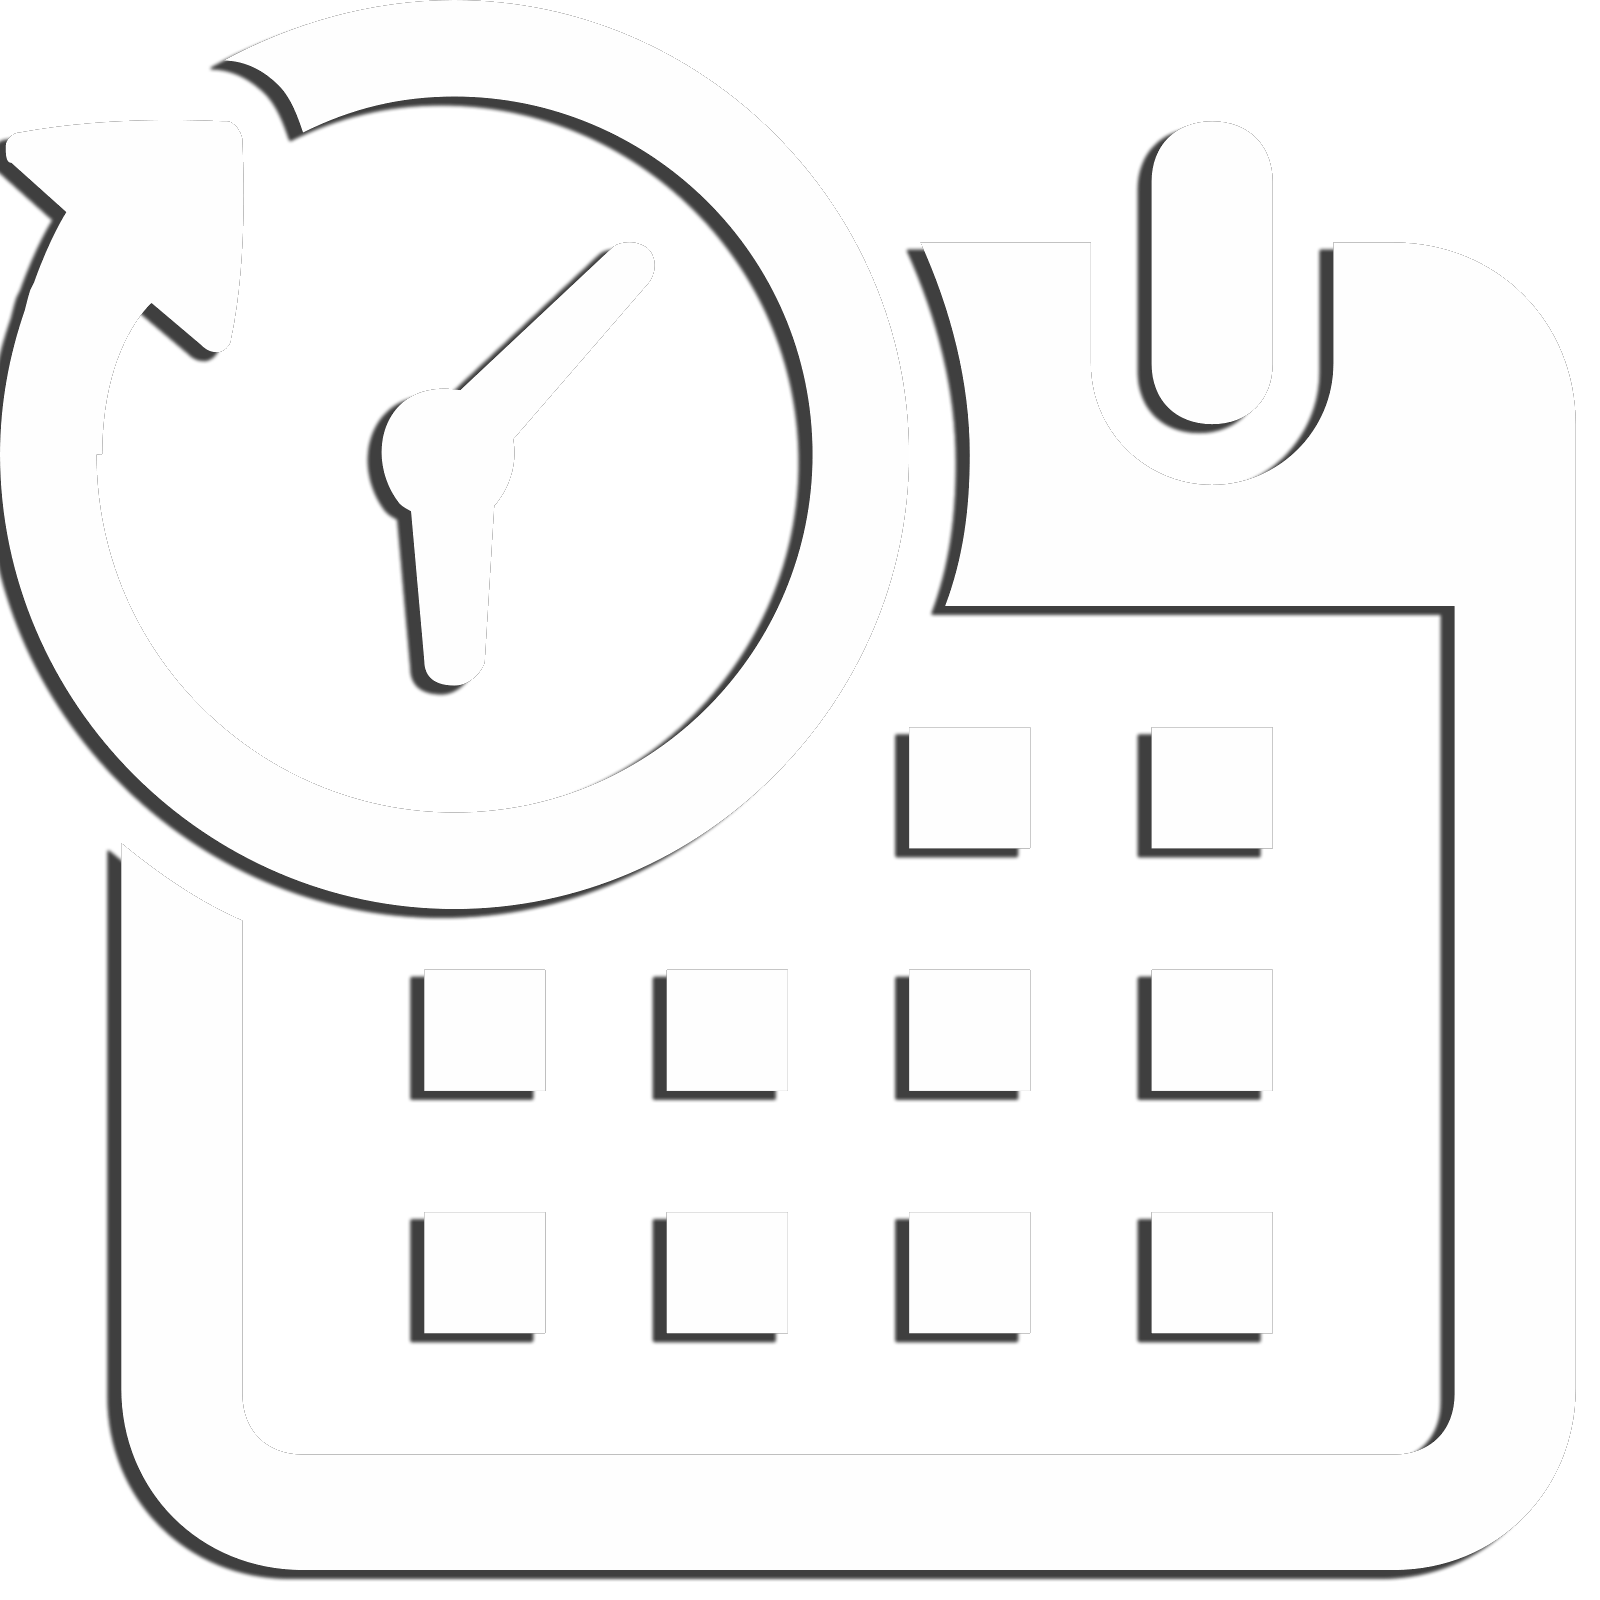 Planner clipart production plan. Demand forecasting supply chain